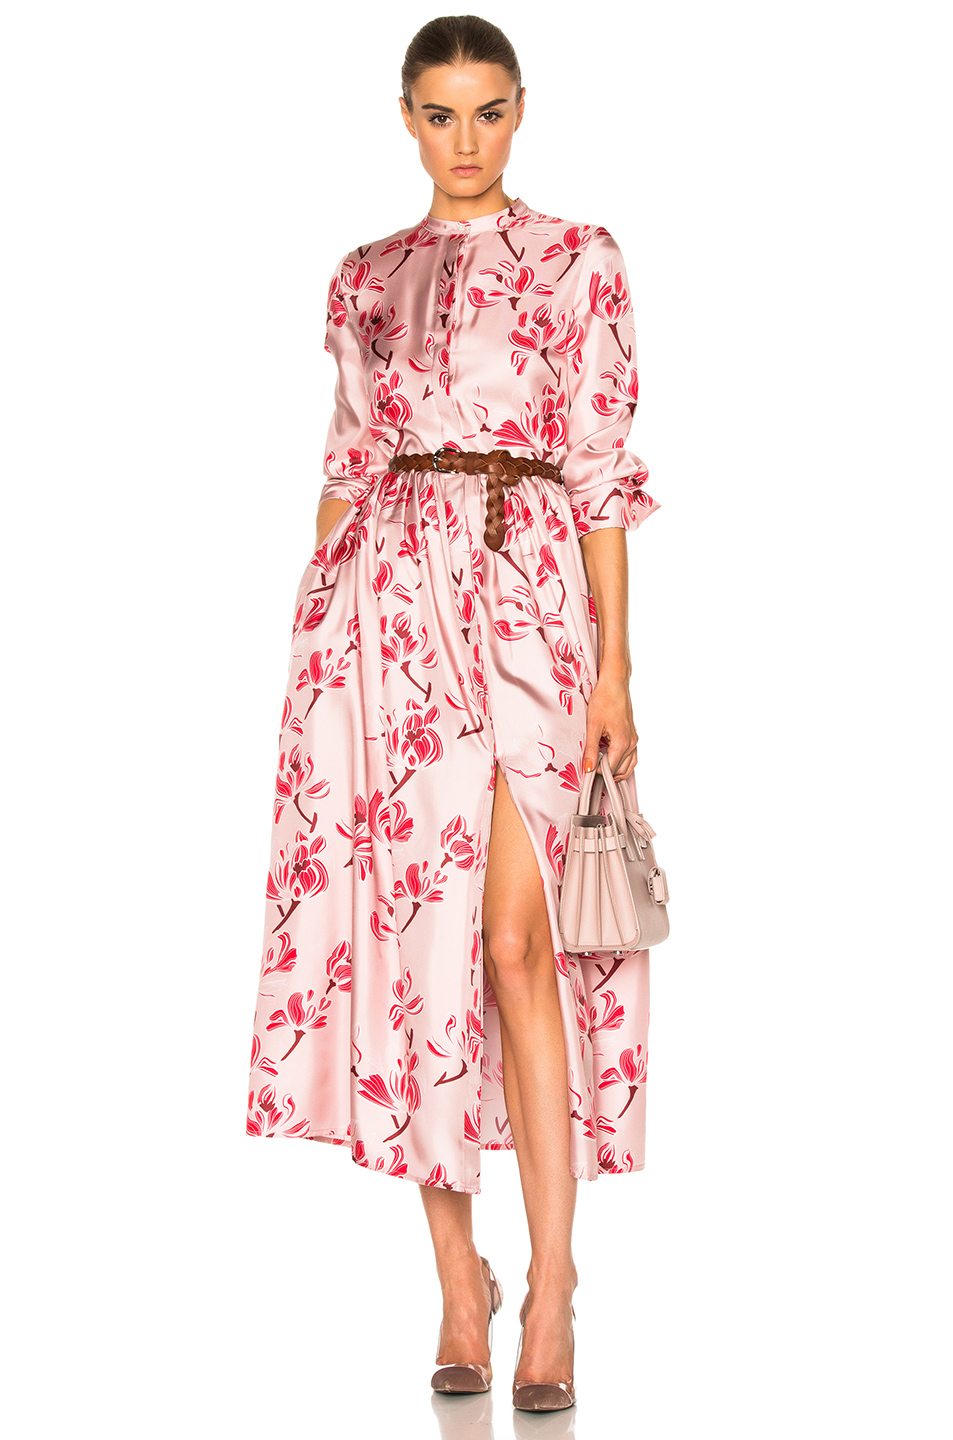 Brock Collection Disco Dress in Pink,Floral